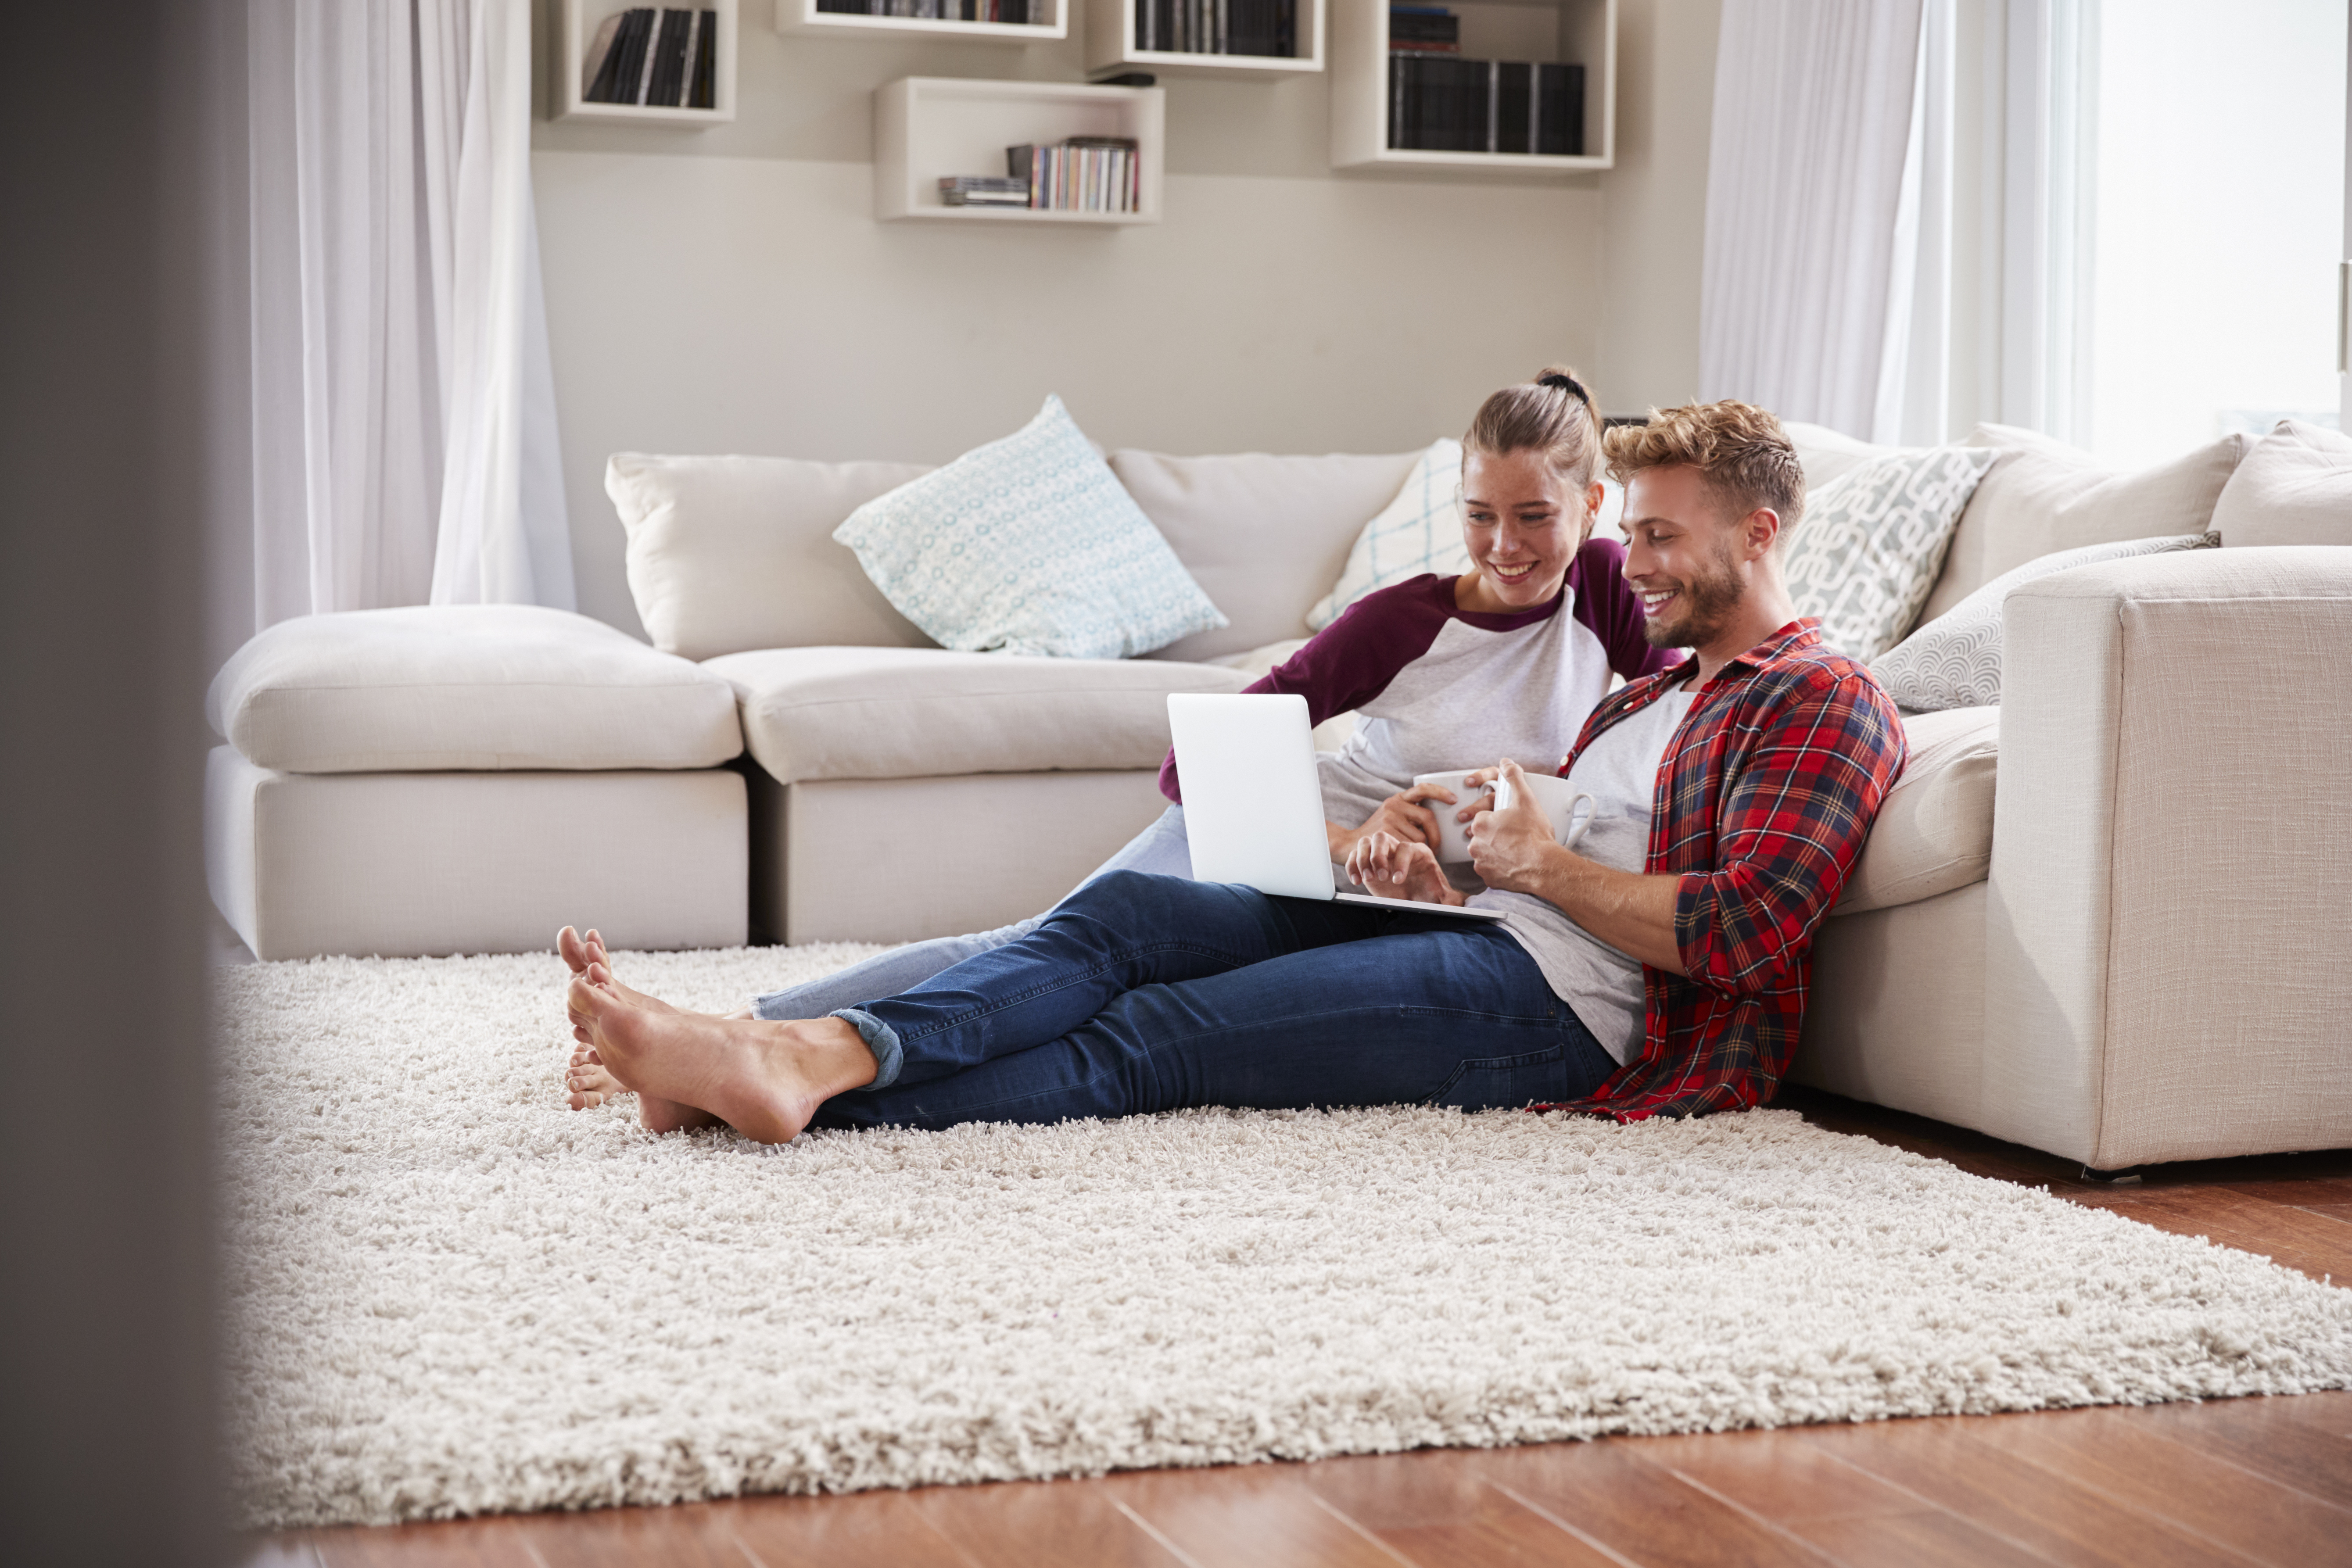 How To Stop An Area Rug From Slipping On The Carpet Home